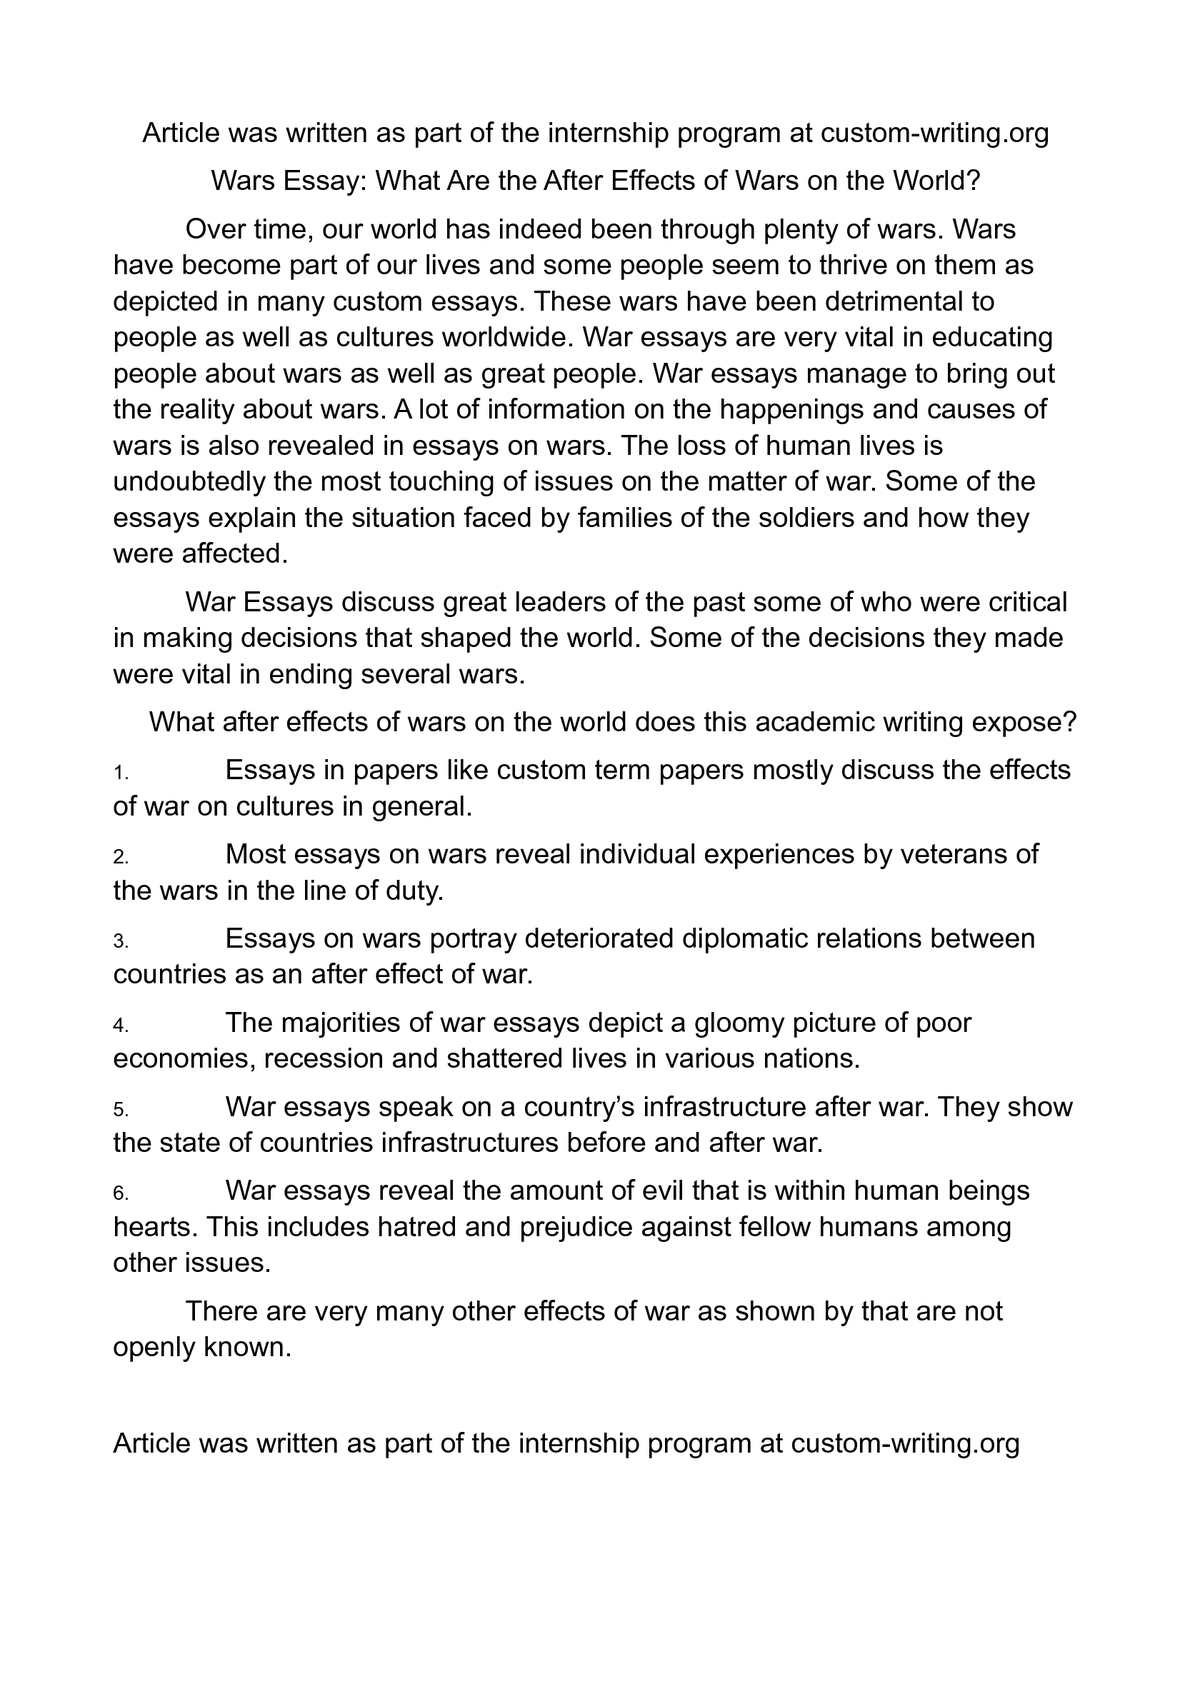 calaméo wars essay what are the after effects of wars on the world